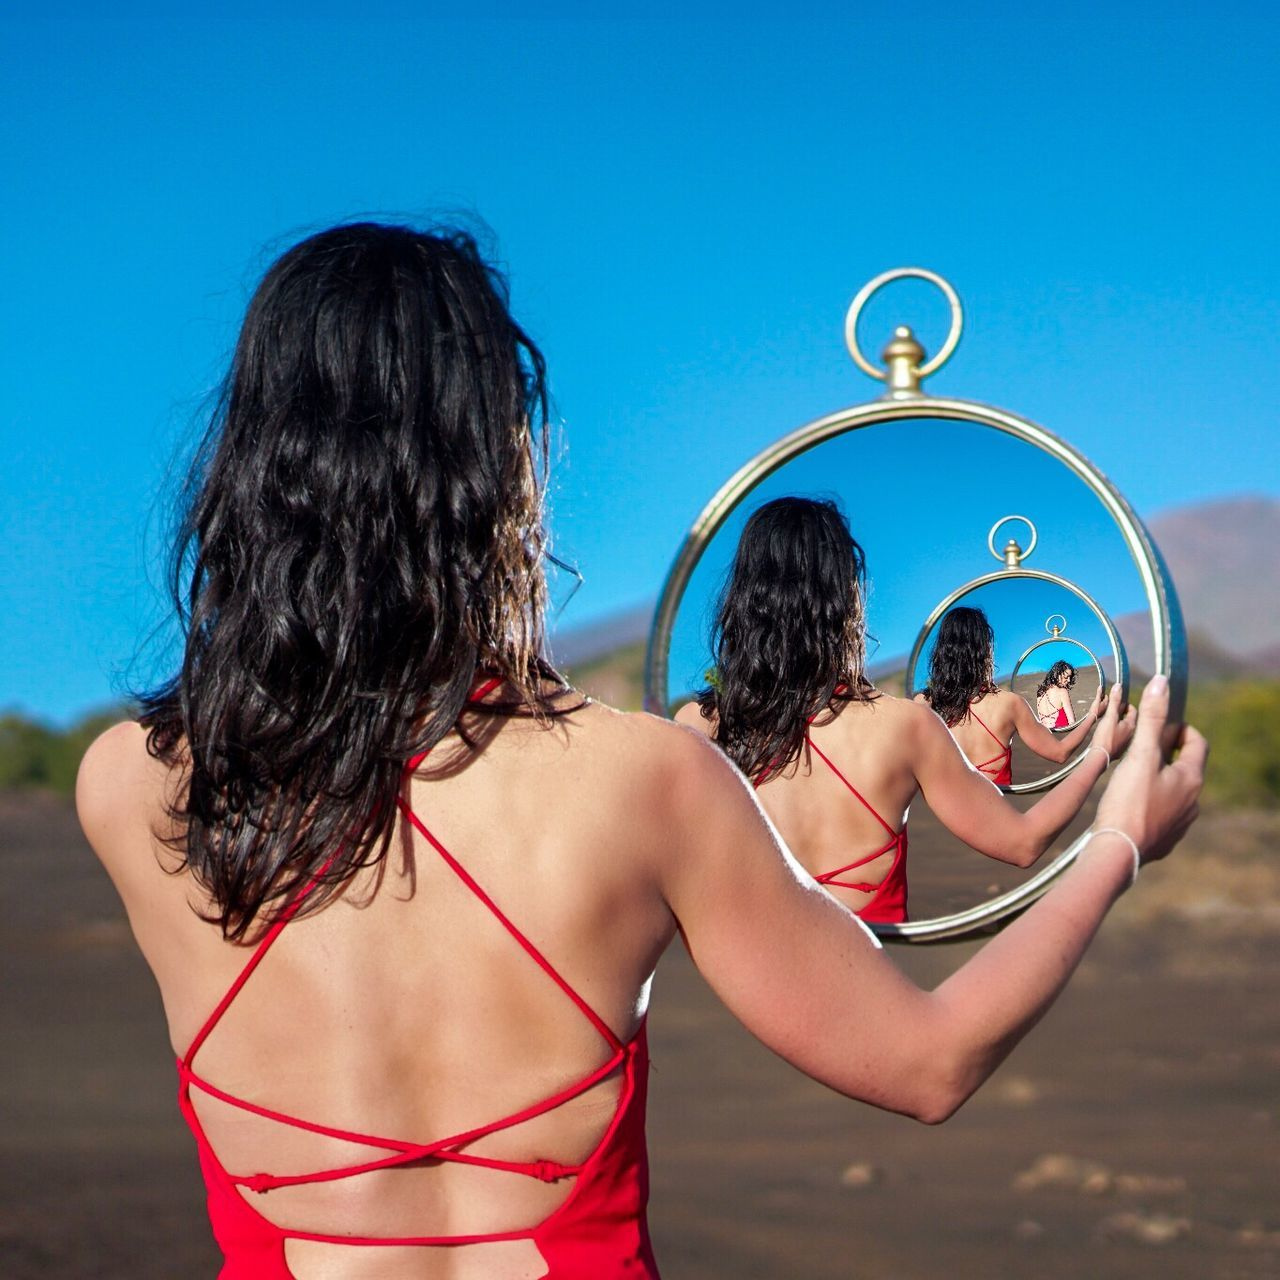 REAR VIEW OF FRIENDS STANDING AT BEACH AGAINST BLUE SKY